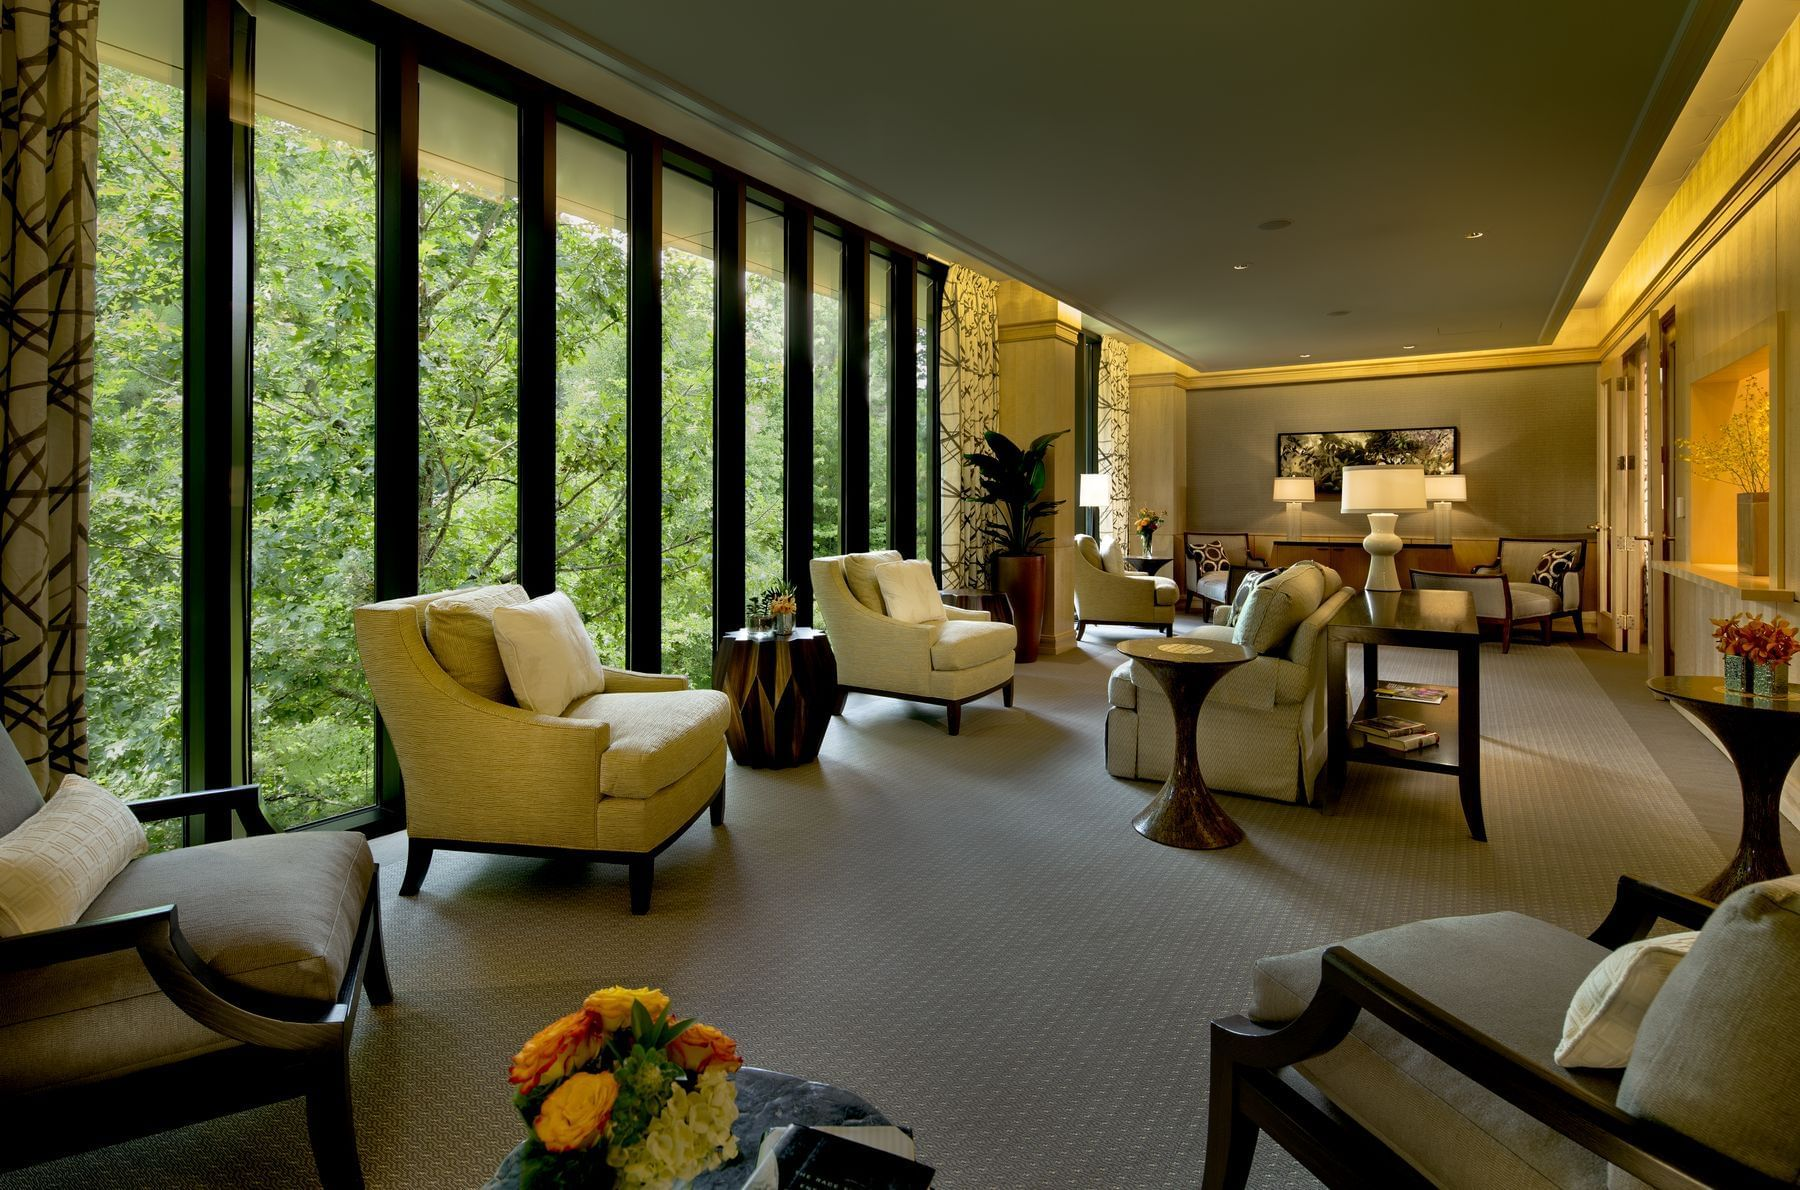 relaxation lounge with chairs and windows